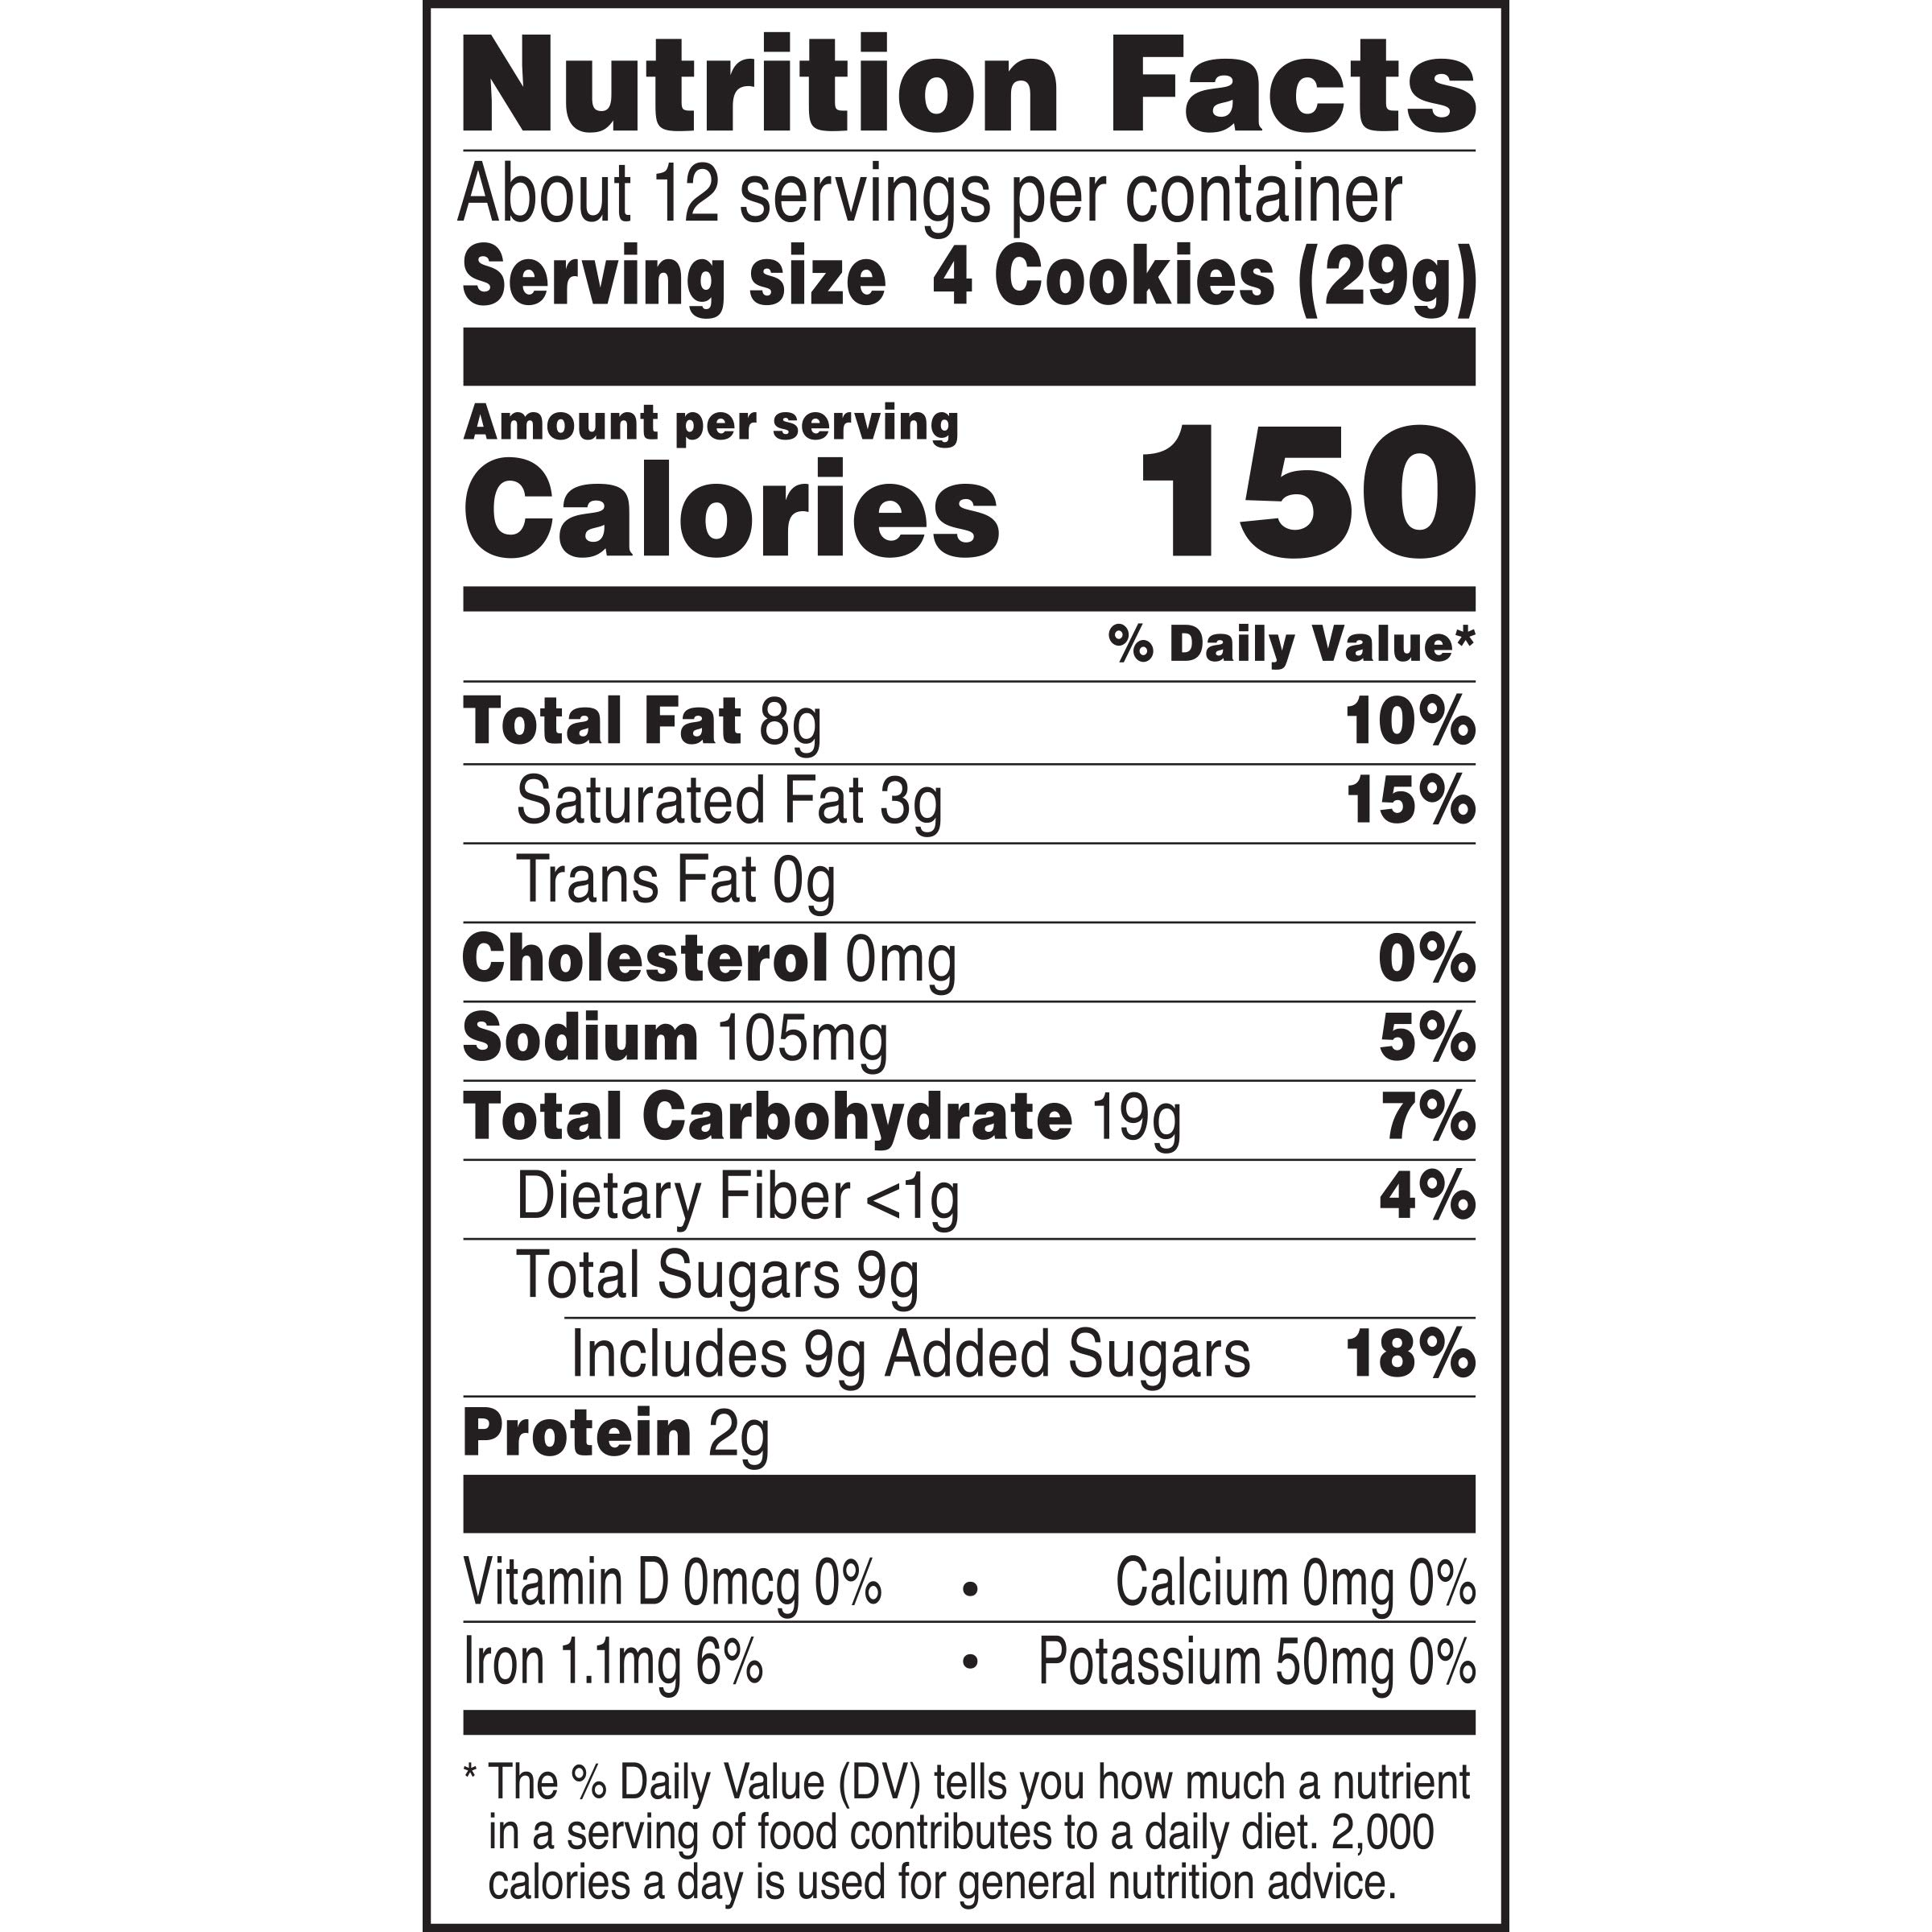 Famous Amos Chocolate Chip and Pecans Bite Size Cookies, 12.4 Ounce (Pack of 9)